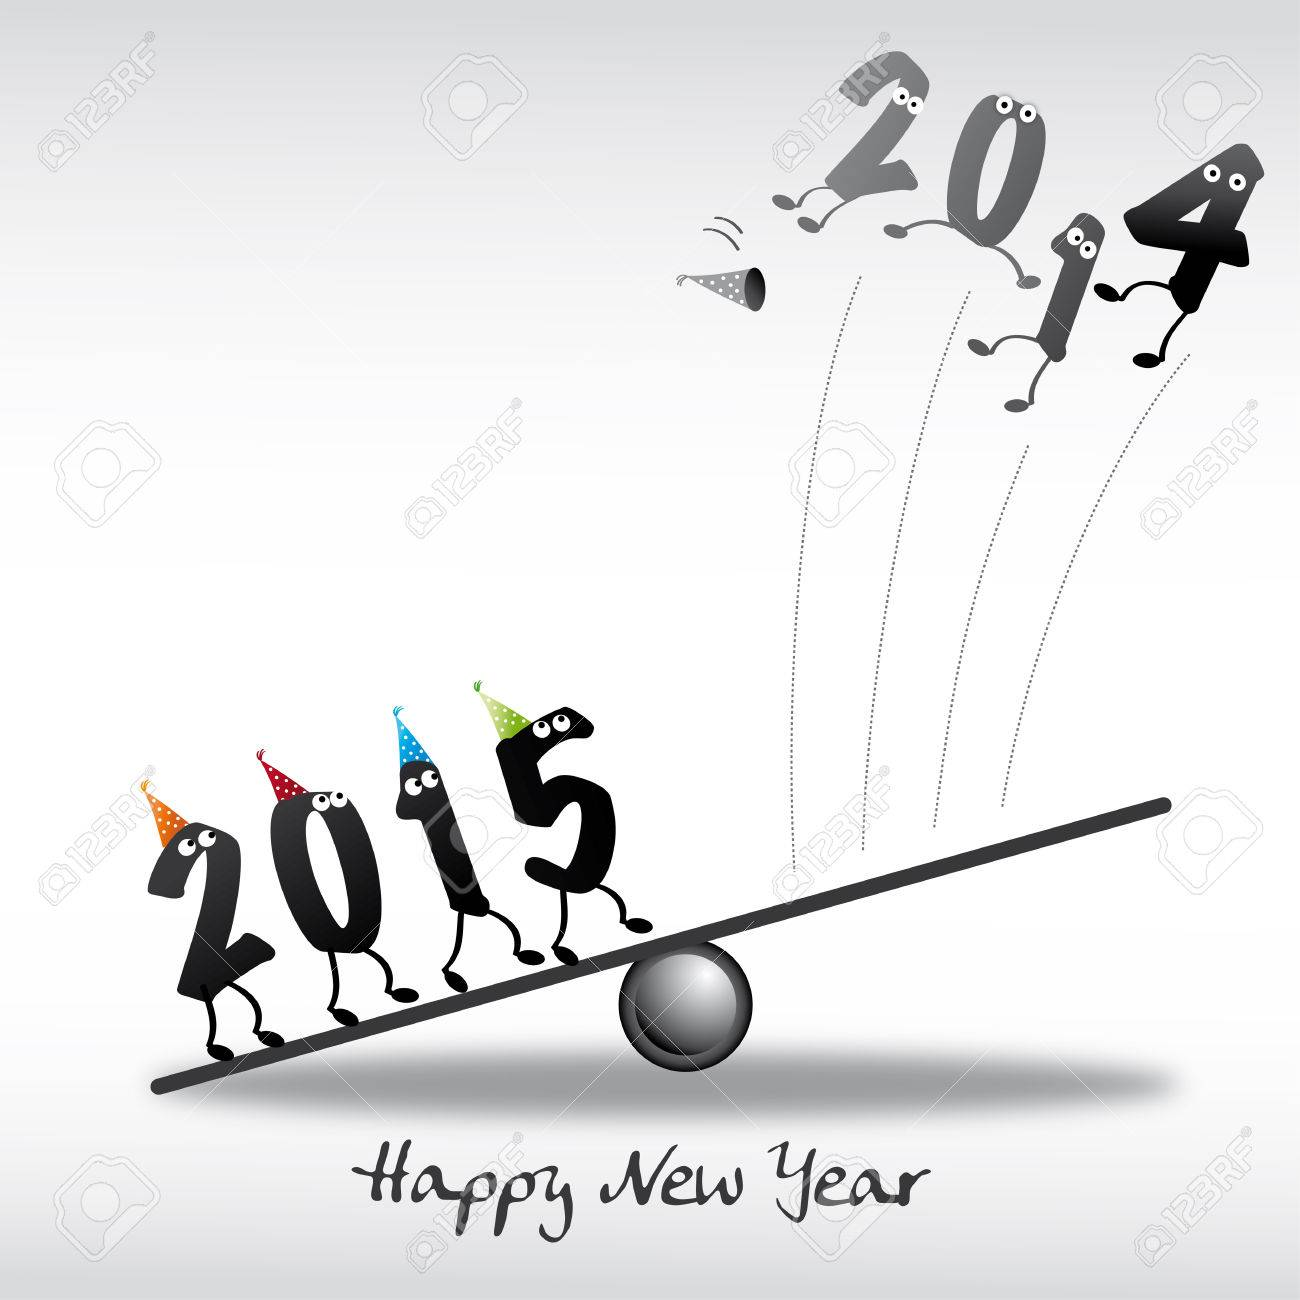 2015 Happy New Year Greeting Card Royalty Free Cliparts Vectors